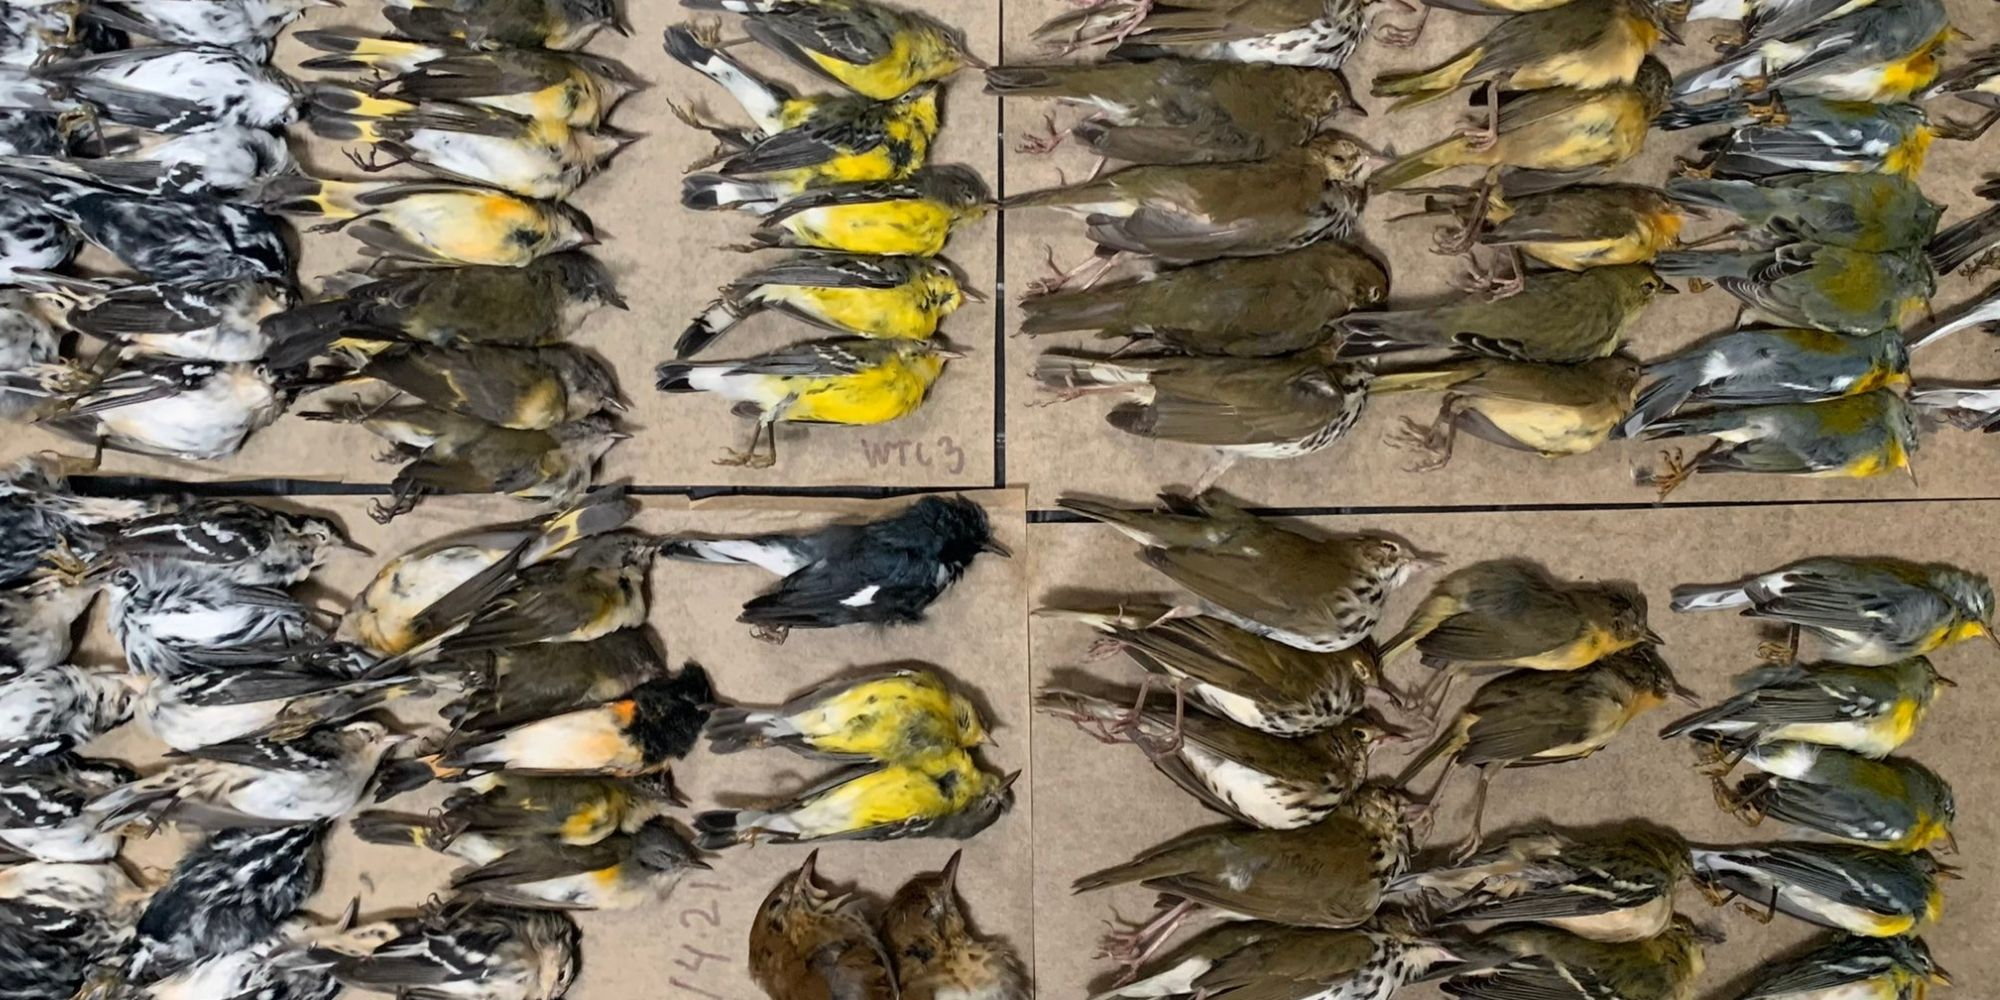 Why Did Hundreds of Birds Die at the World Trade Center in One Morning?